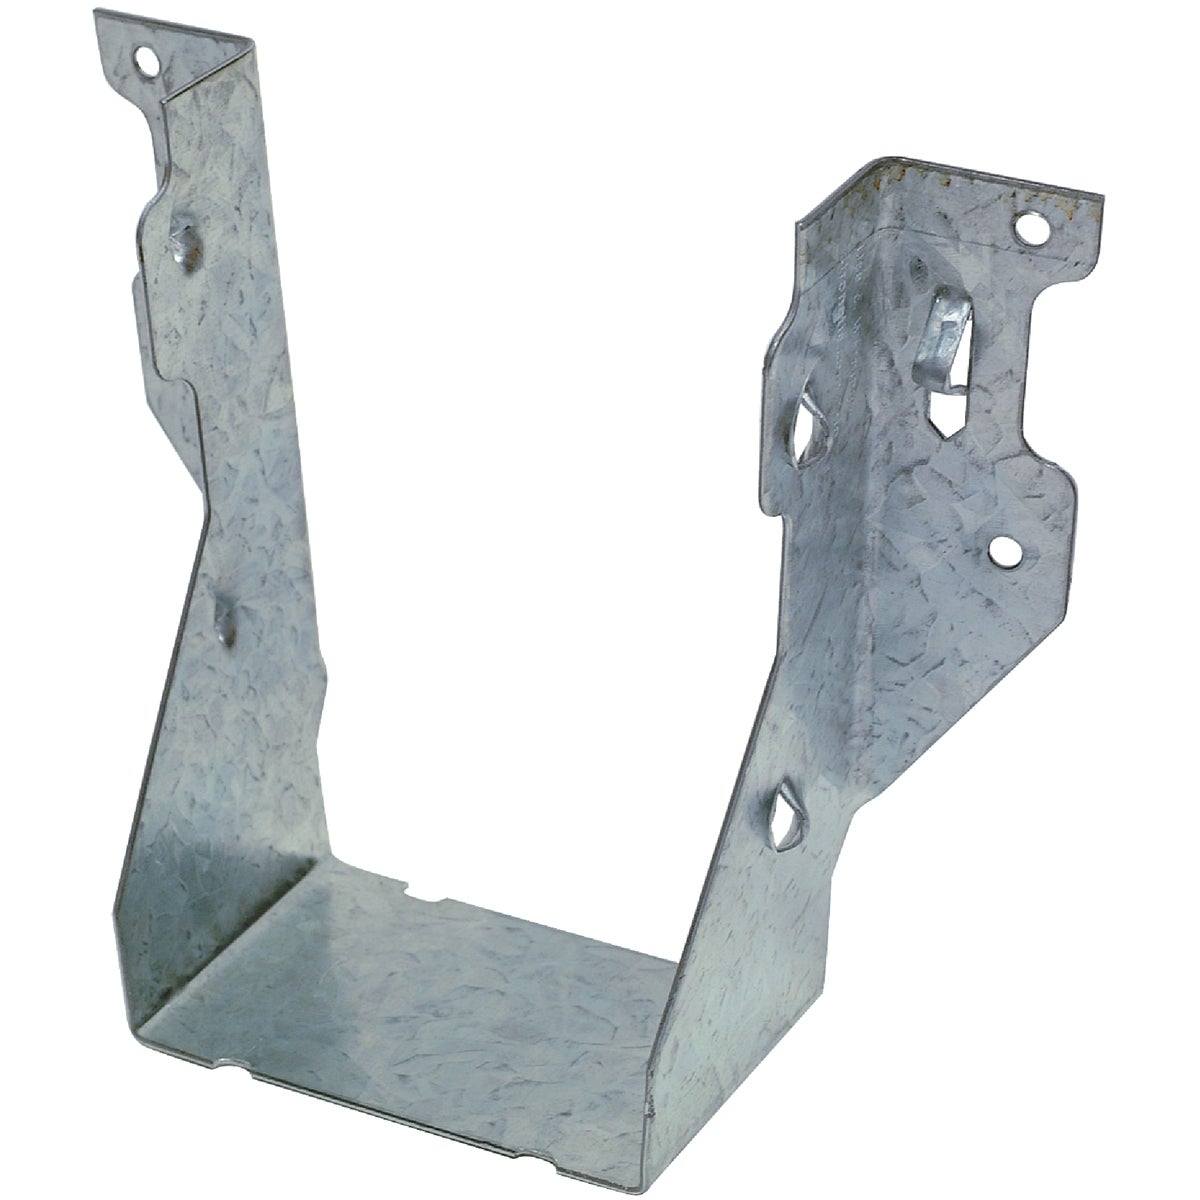 2X6 DOUBLE JOIST HANGER - LUS26-2 by Simpson Strong Tie